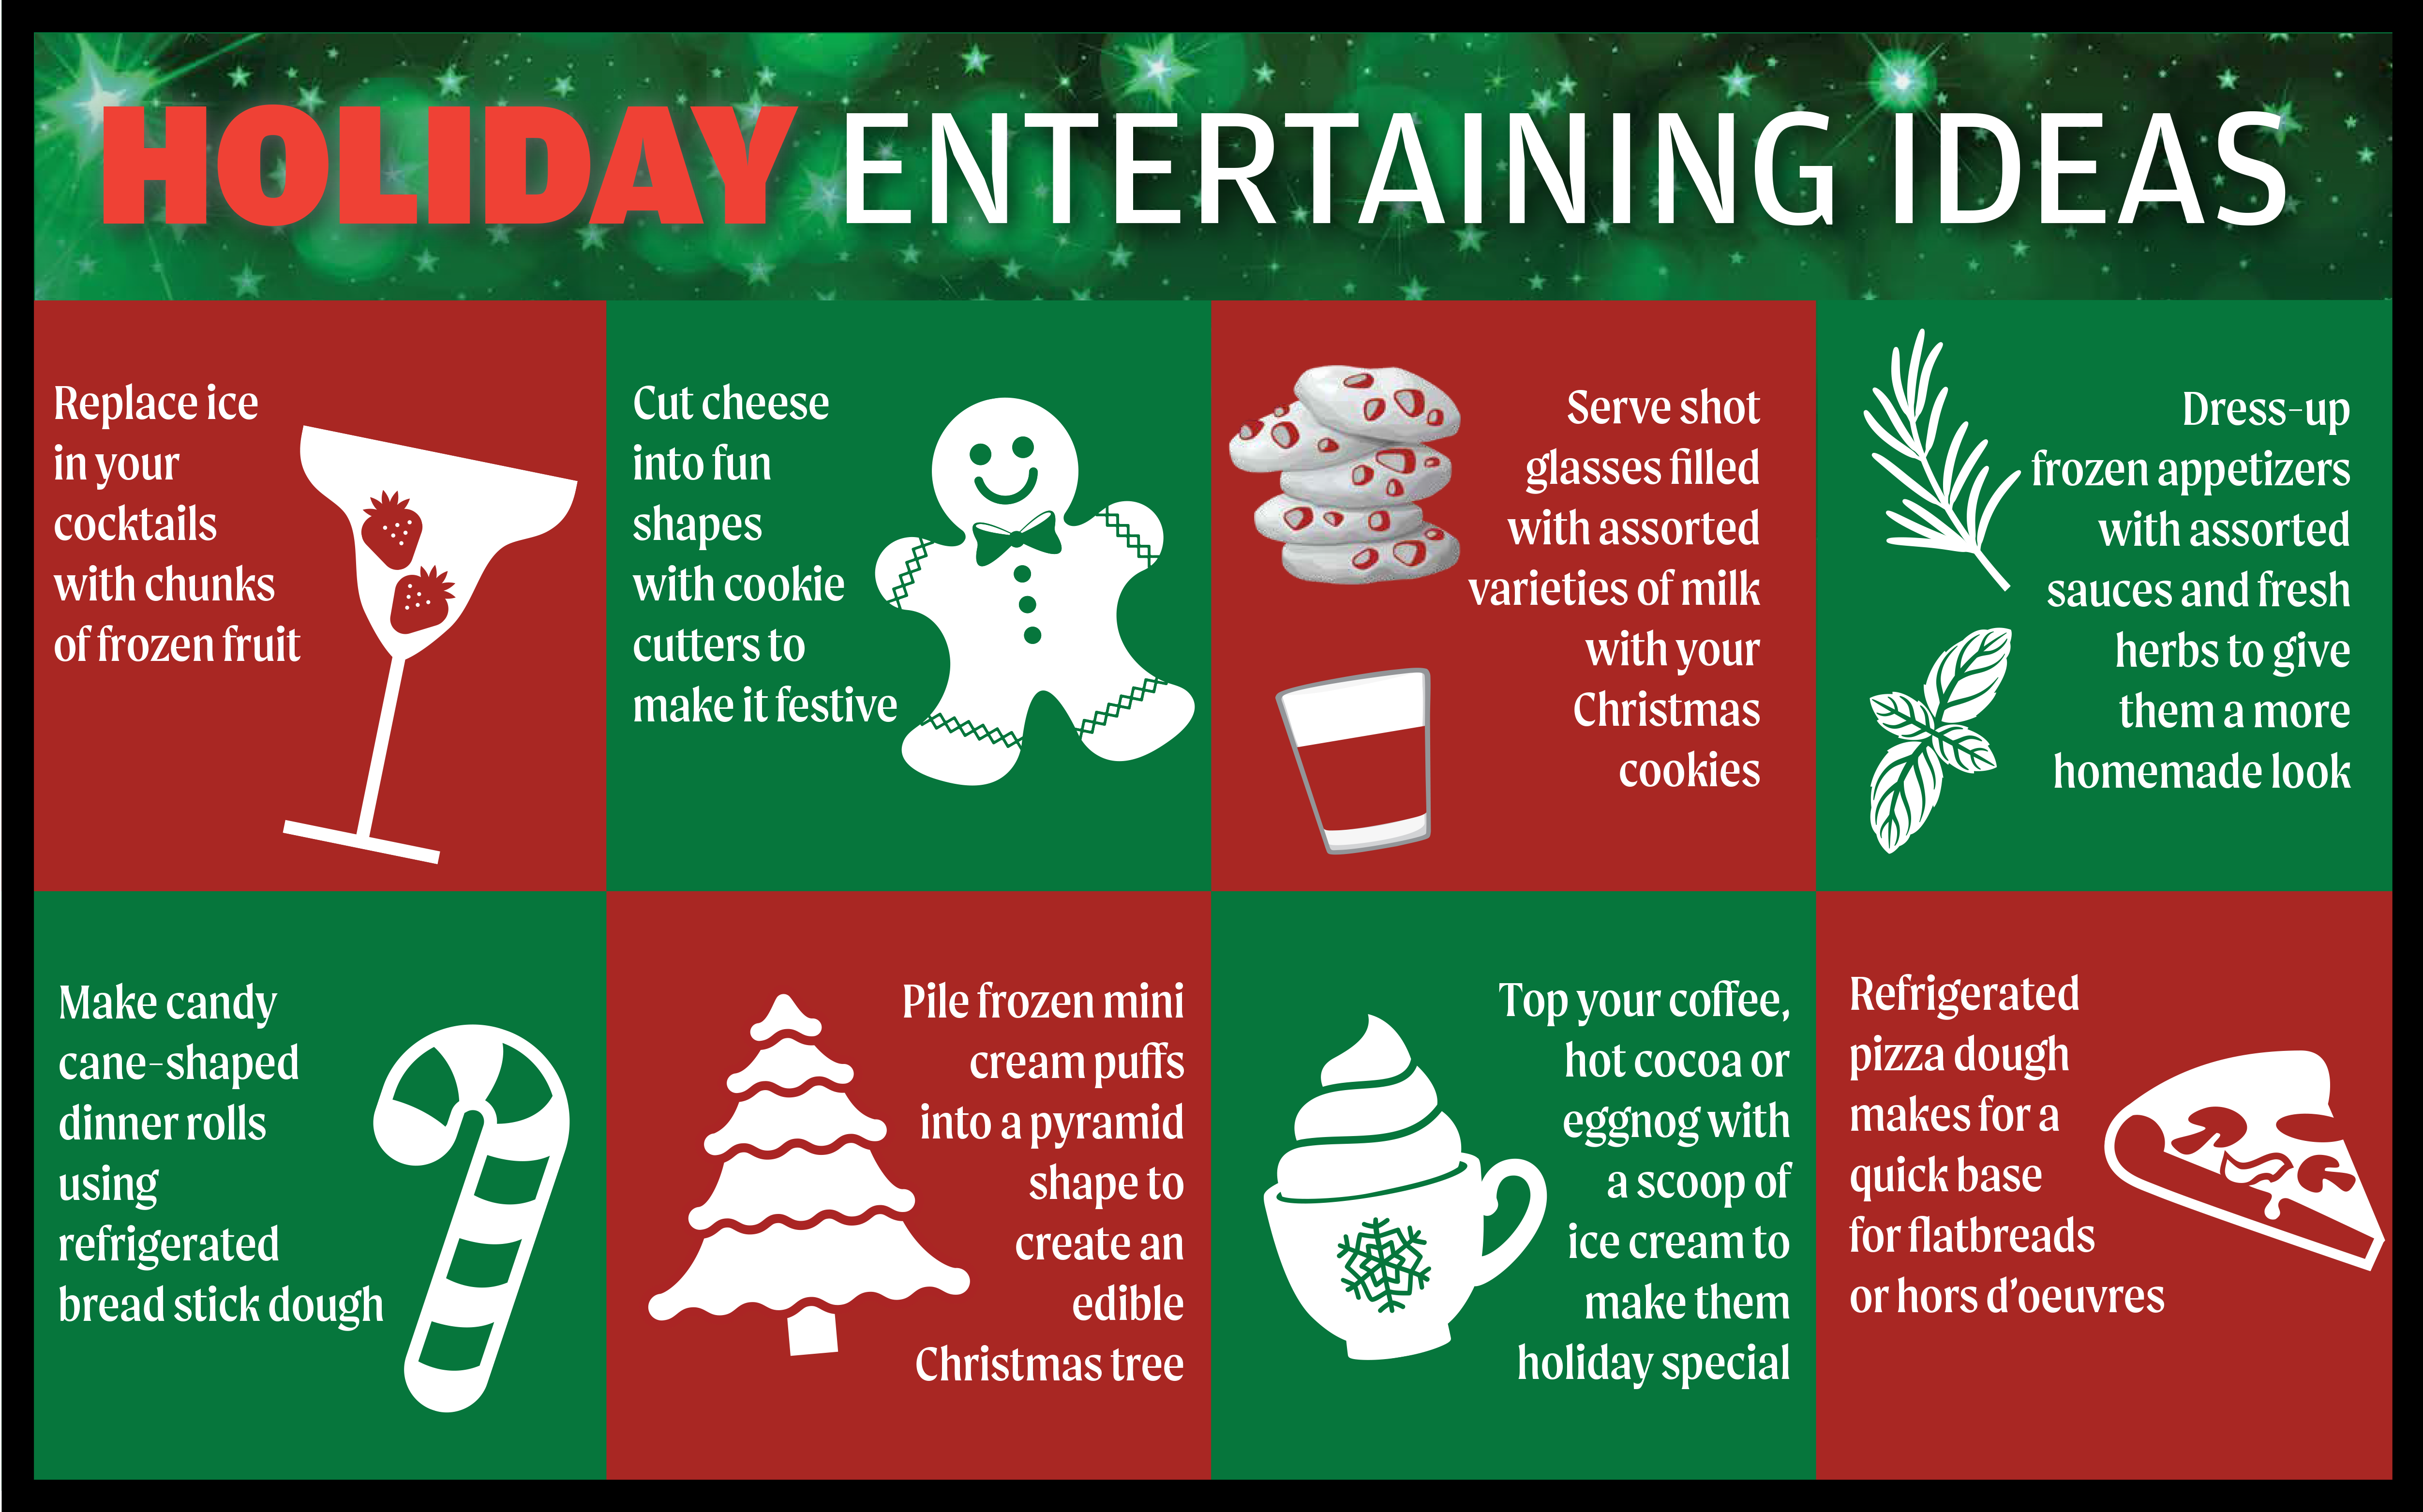 Holiday Entertaining Ideas Infographic